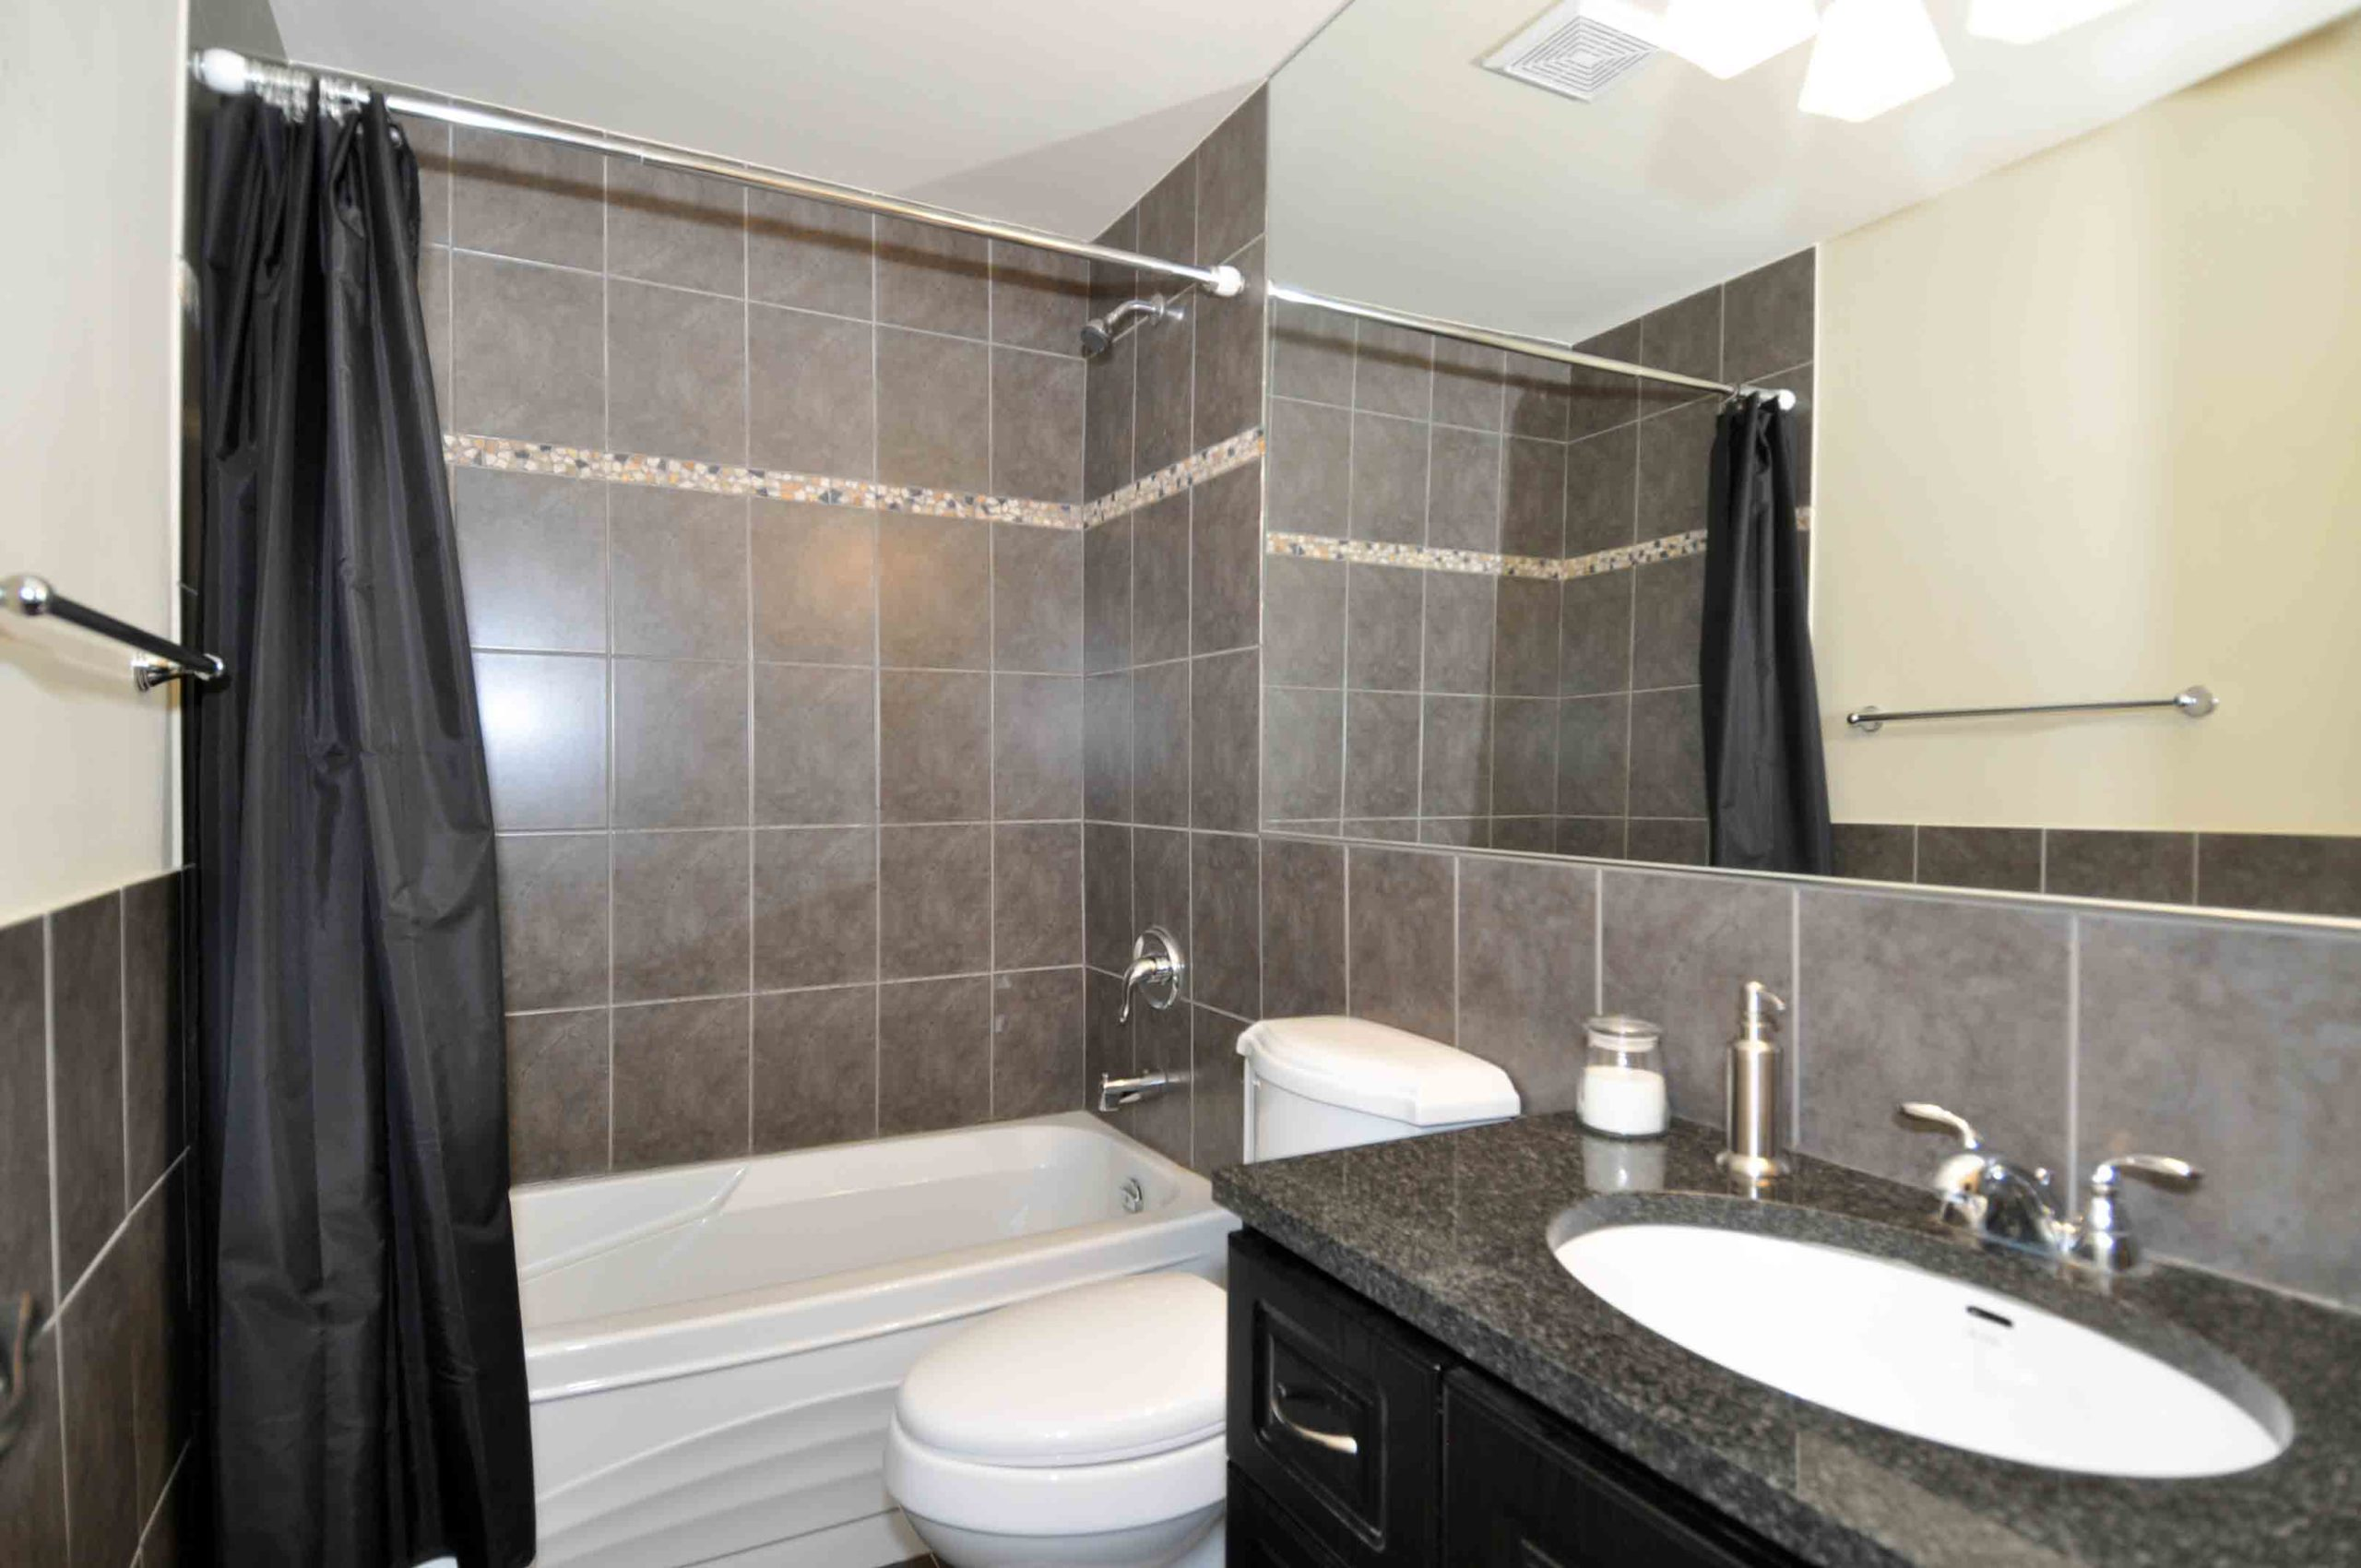 09 360_dundas_street_east_MLS_HID808873_ROOMbathroom